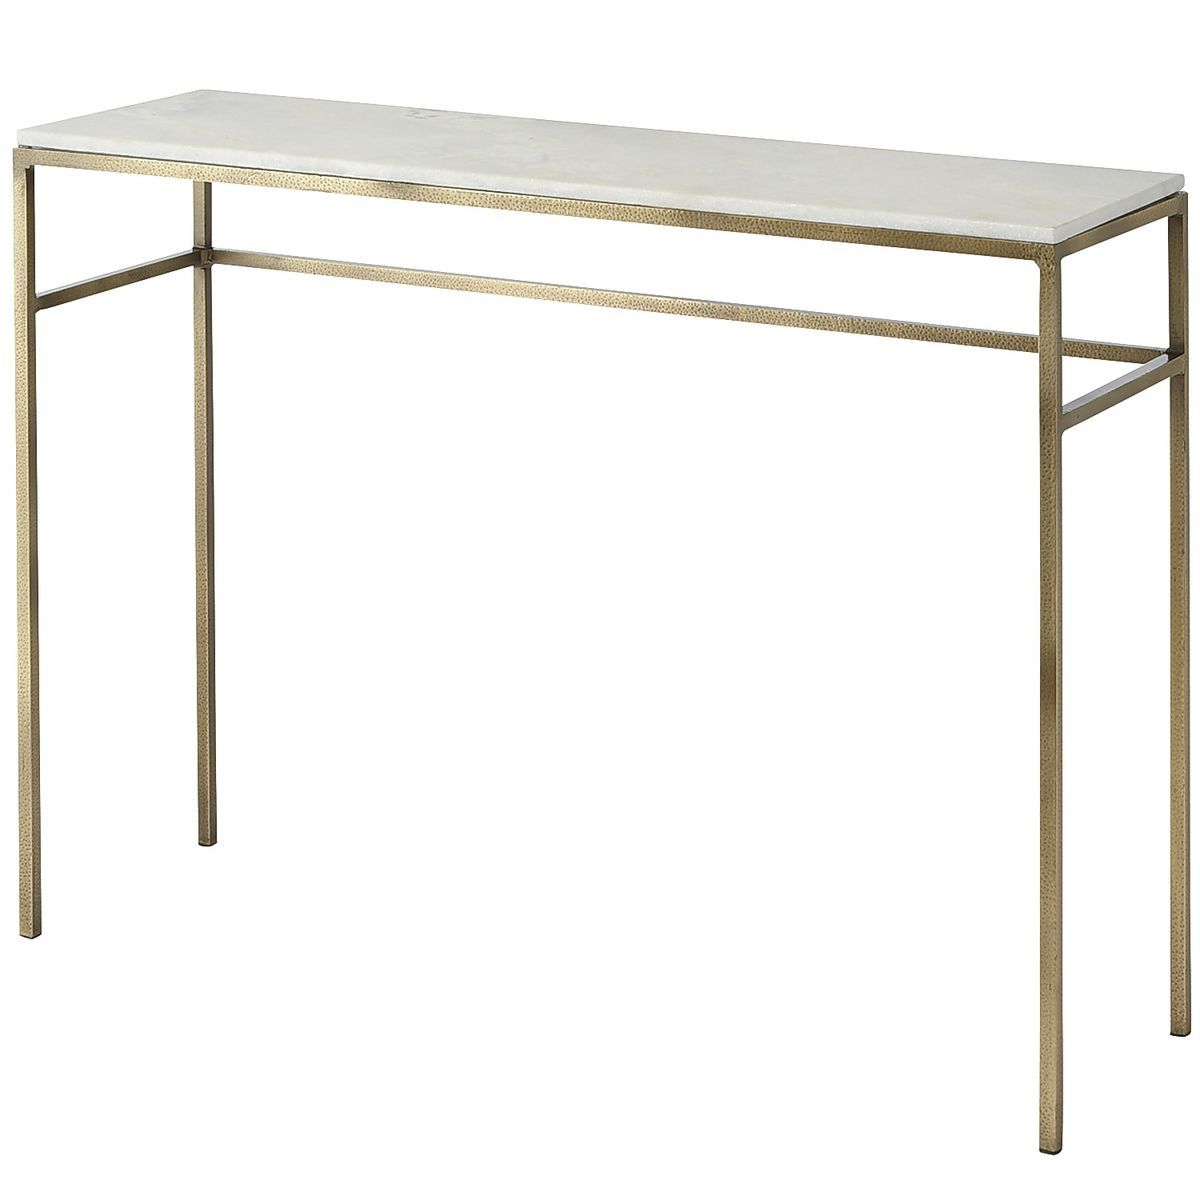 If You're Looking For A Way To Elevate Your Living Space, Ethel Regarding Elke Glass Console Tables With Brass Base (View 12 of 20)